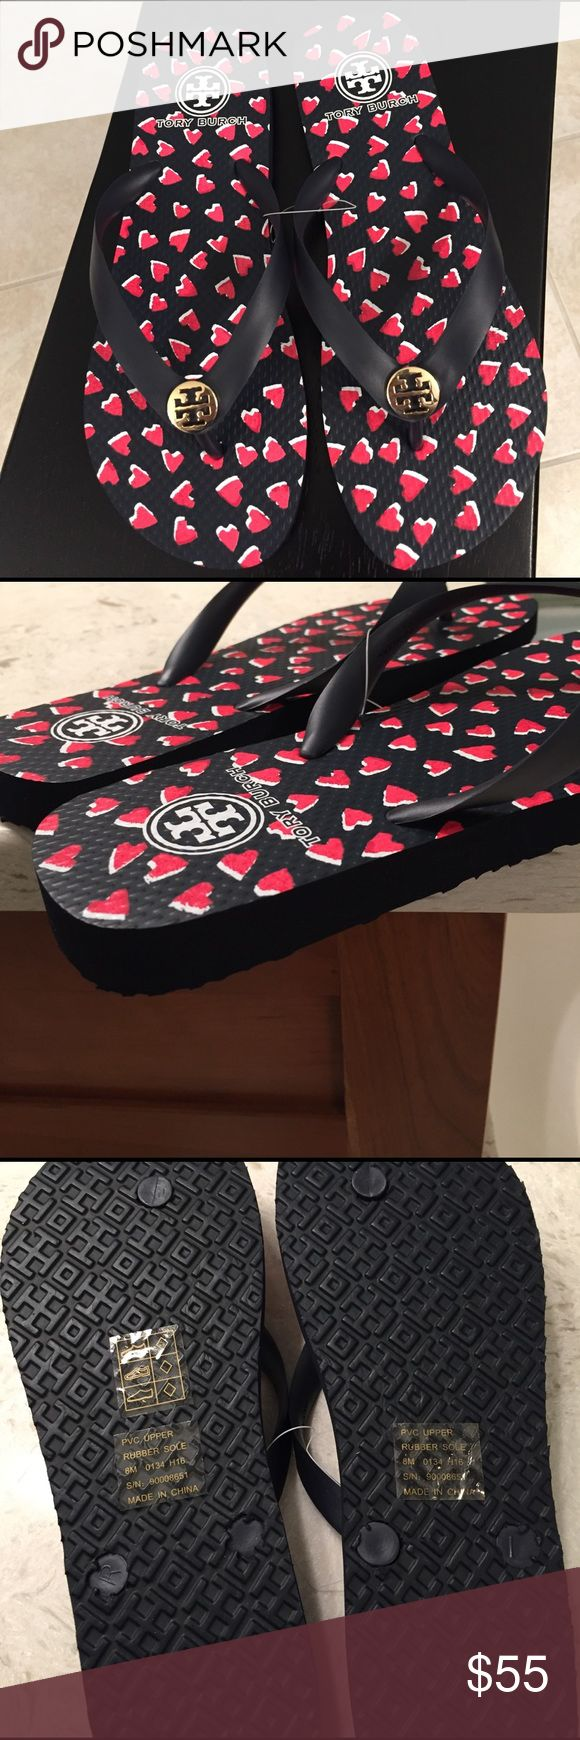 """🆕Tory Burch """"Heart"""" Navy/Red Flip Flops. NWT Sooo cute, these heart ❤️ shaped designed flip flops go great with EVERYTHING and are very comfortable. New, with tag stickers, never worn. Tory Burch Shoes Sandals"""